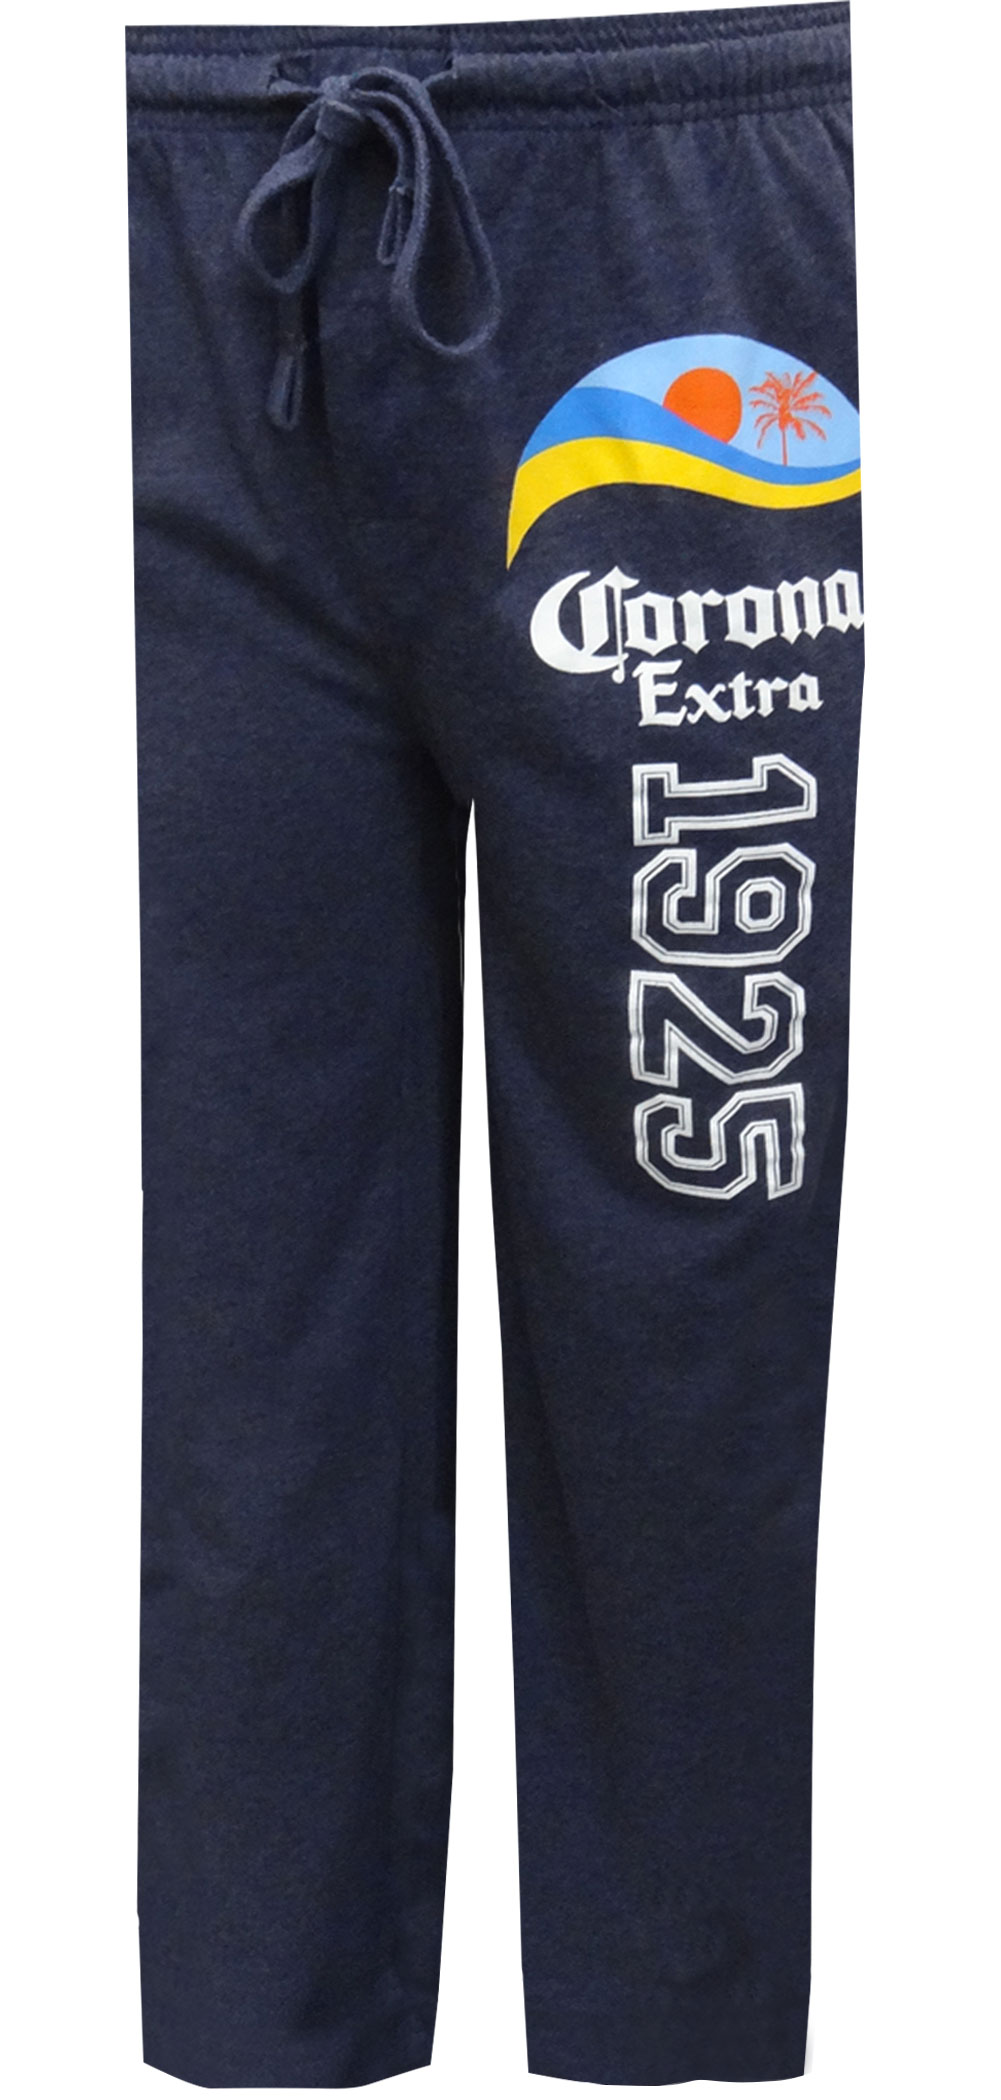 Image of Corona Extra Beer 1925 Lounge Pants for men